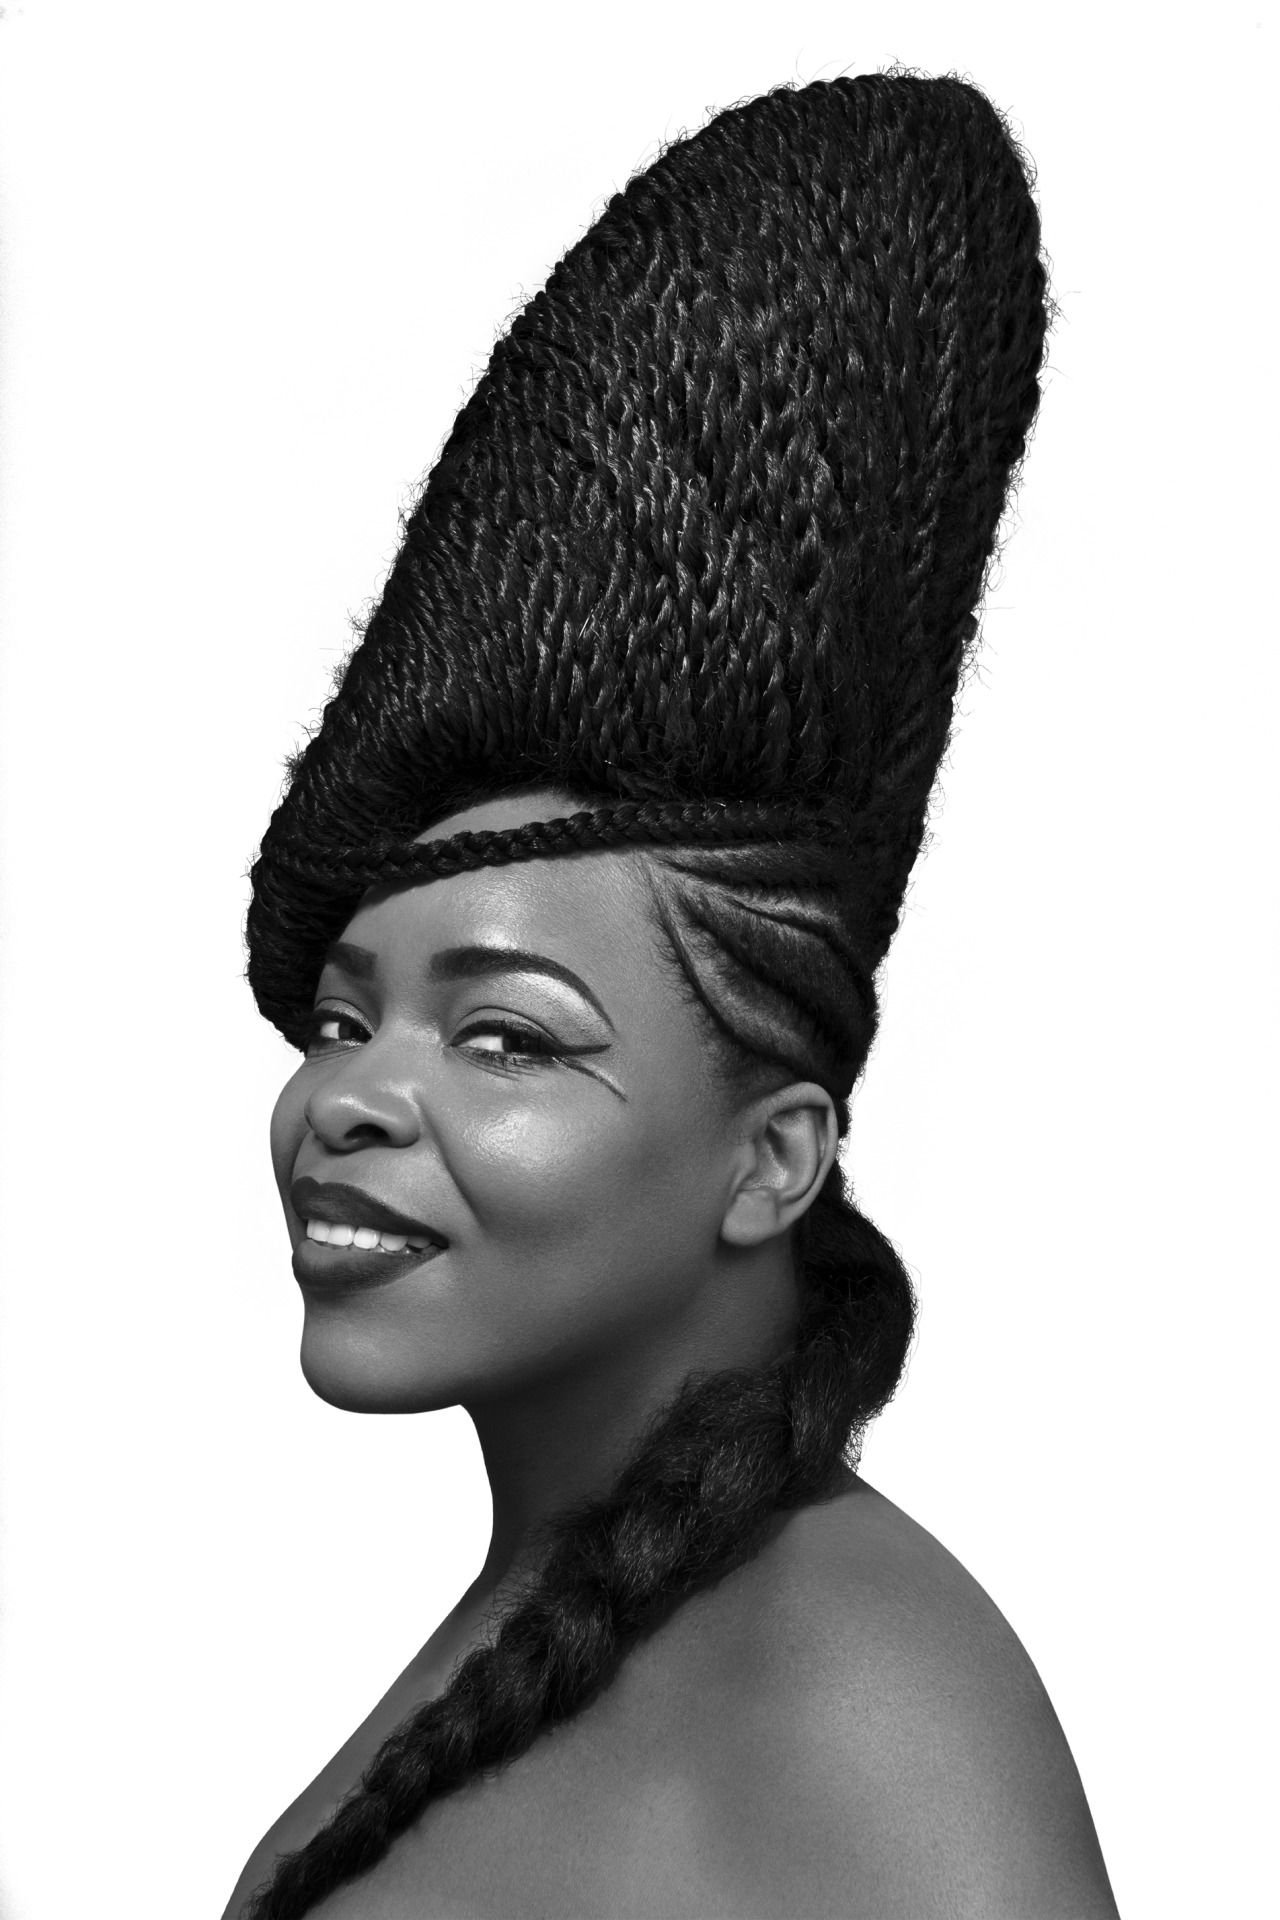 Discover This Incredible Nigerian Hairdo (View 5 of 15)